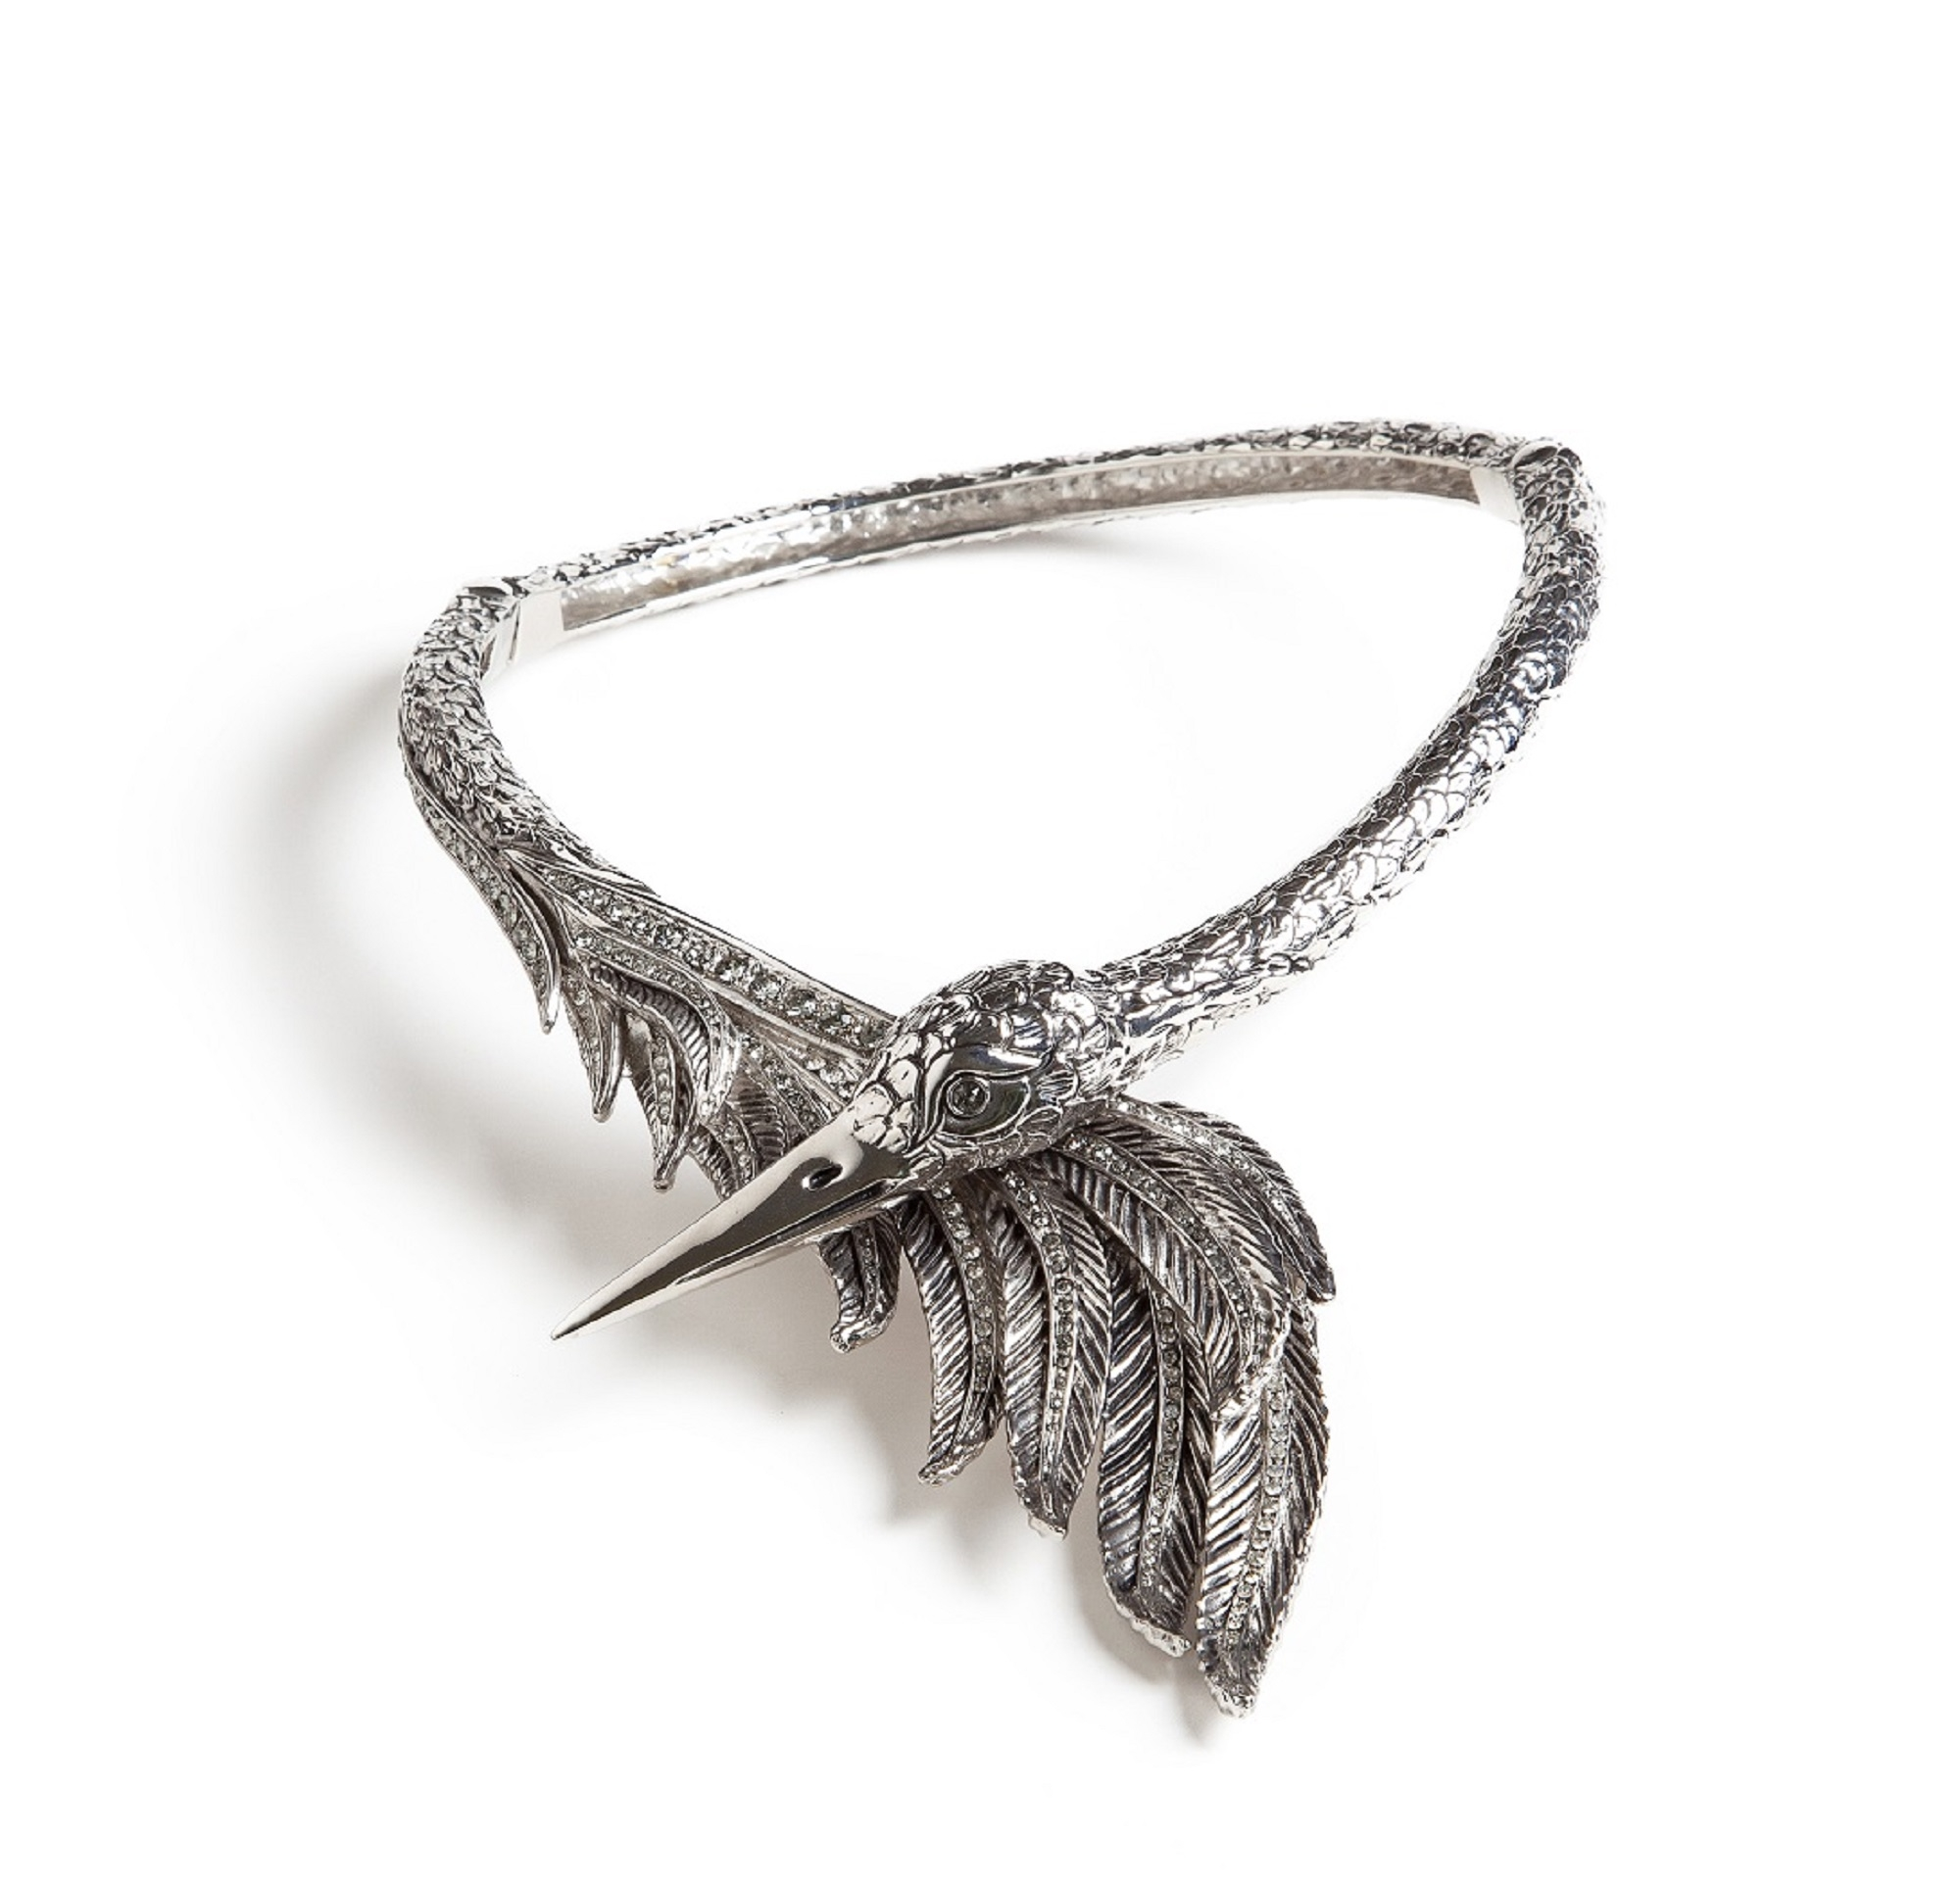 Swan Costume Statement Necklace by Sonia Petroff on curated-crowd.com